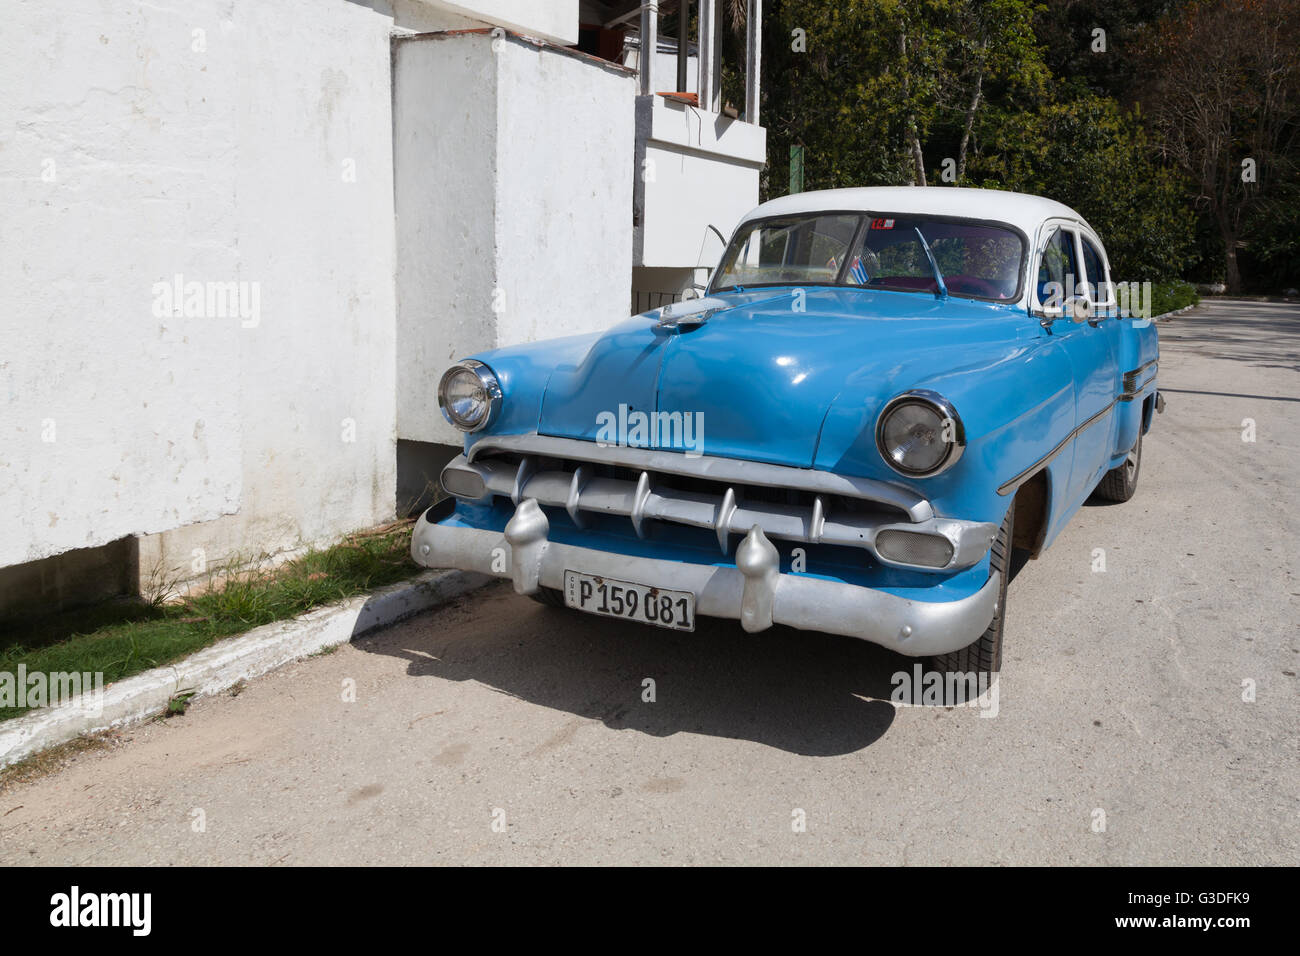 Classic American Light Blue Car With White Roof, Cuba